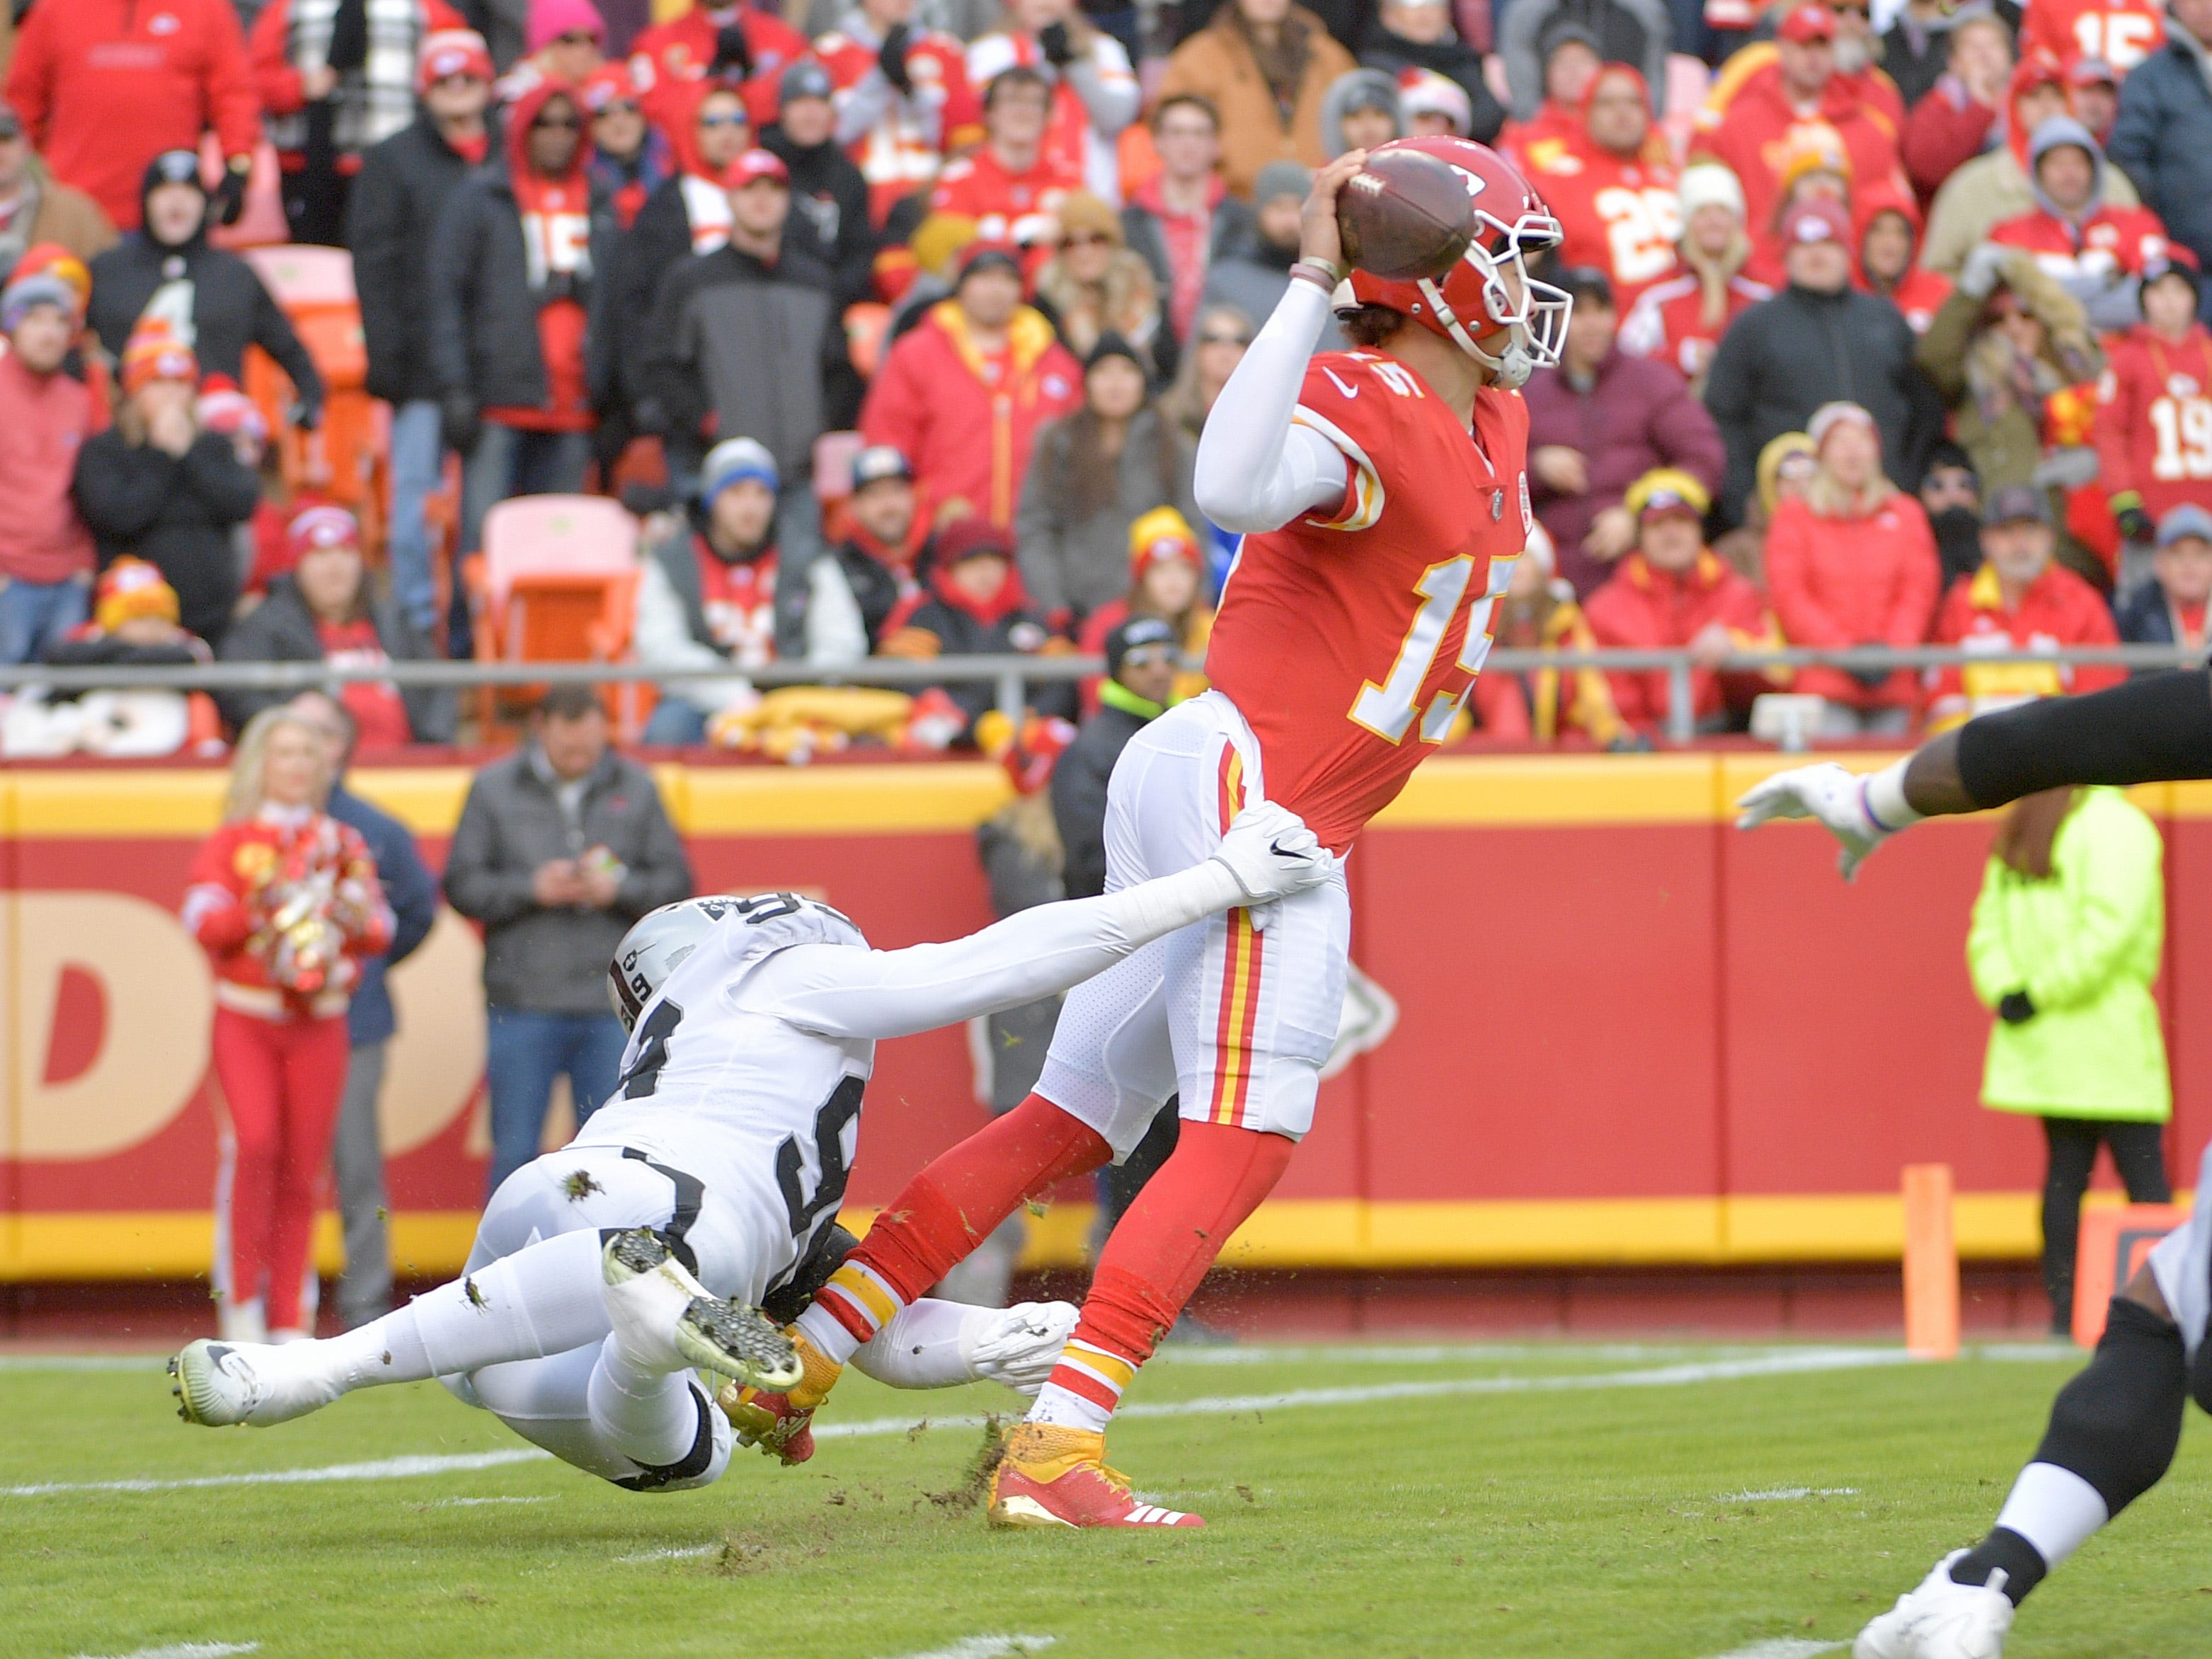 Kansas City Chiefs quarterback Patrick Mahomes (15) throws a pass despite the harassment from Oakland Raiders defensive end Arden Key (99) during the first half at Arrowhead Stadium.